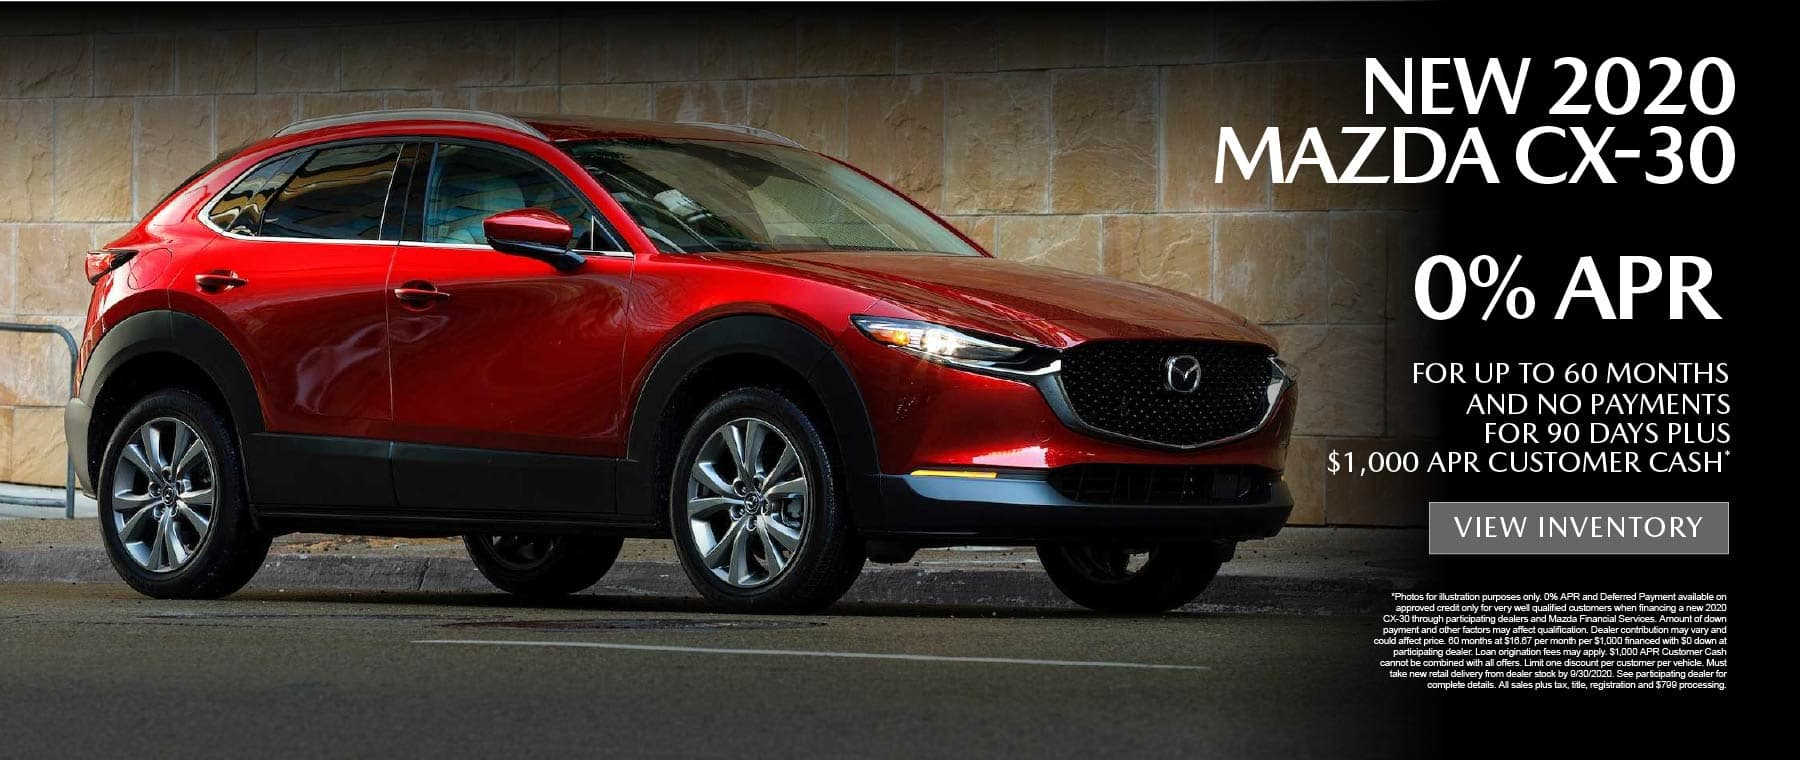 CX-30 0% APR for up to 60 months - click here to view inventory